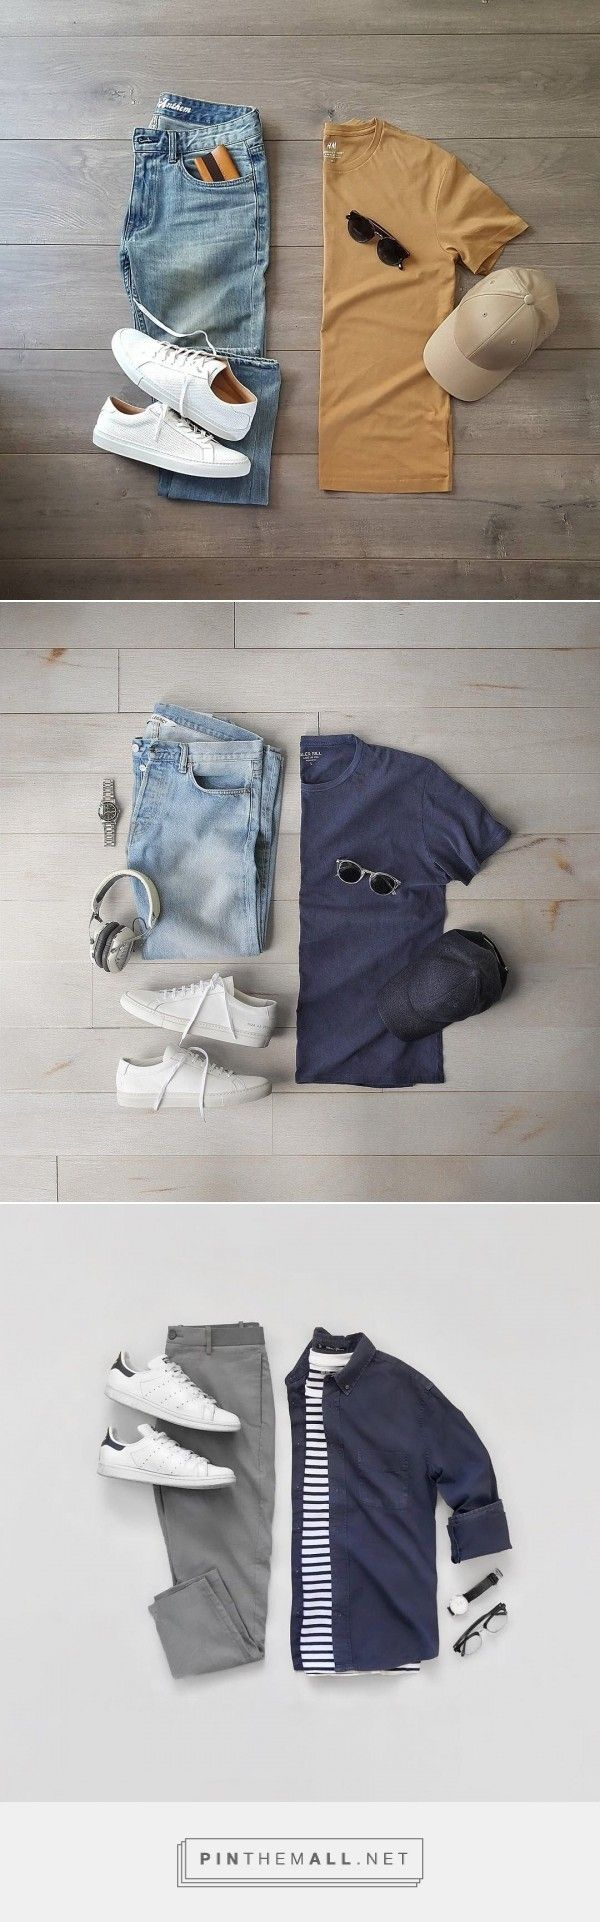 3 Fresh Summer Outfit Grids For Men #mensfashion #fashion #style #fallfashion #streetstyle #outfitgrid